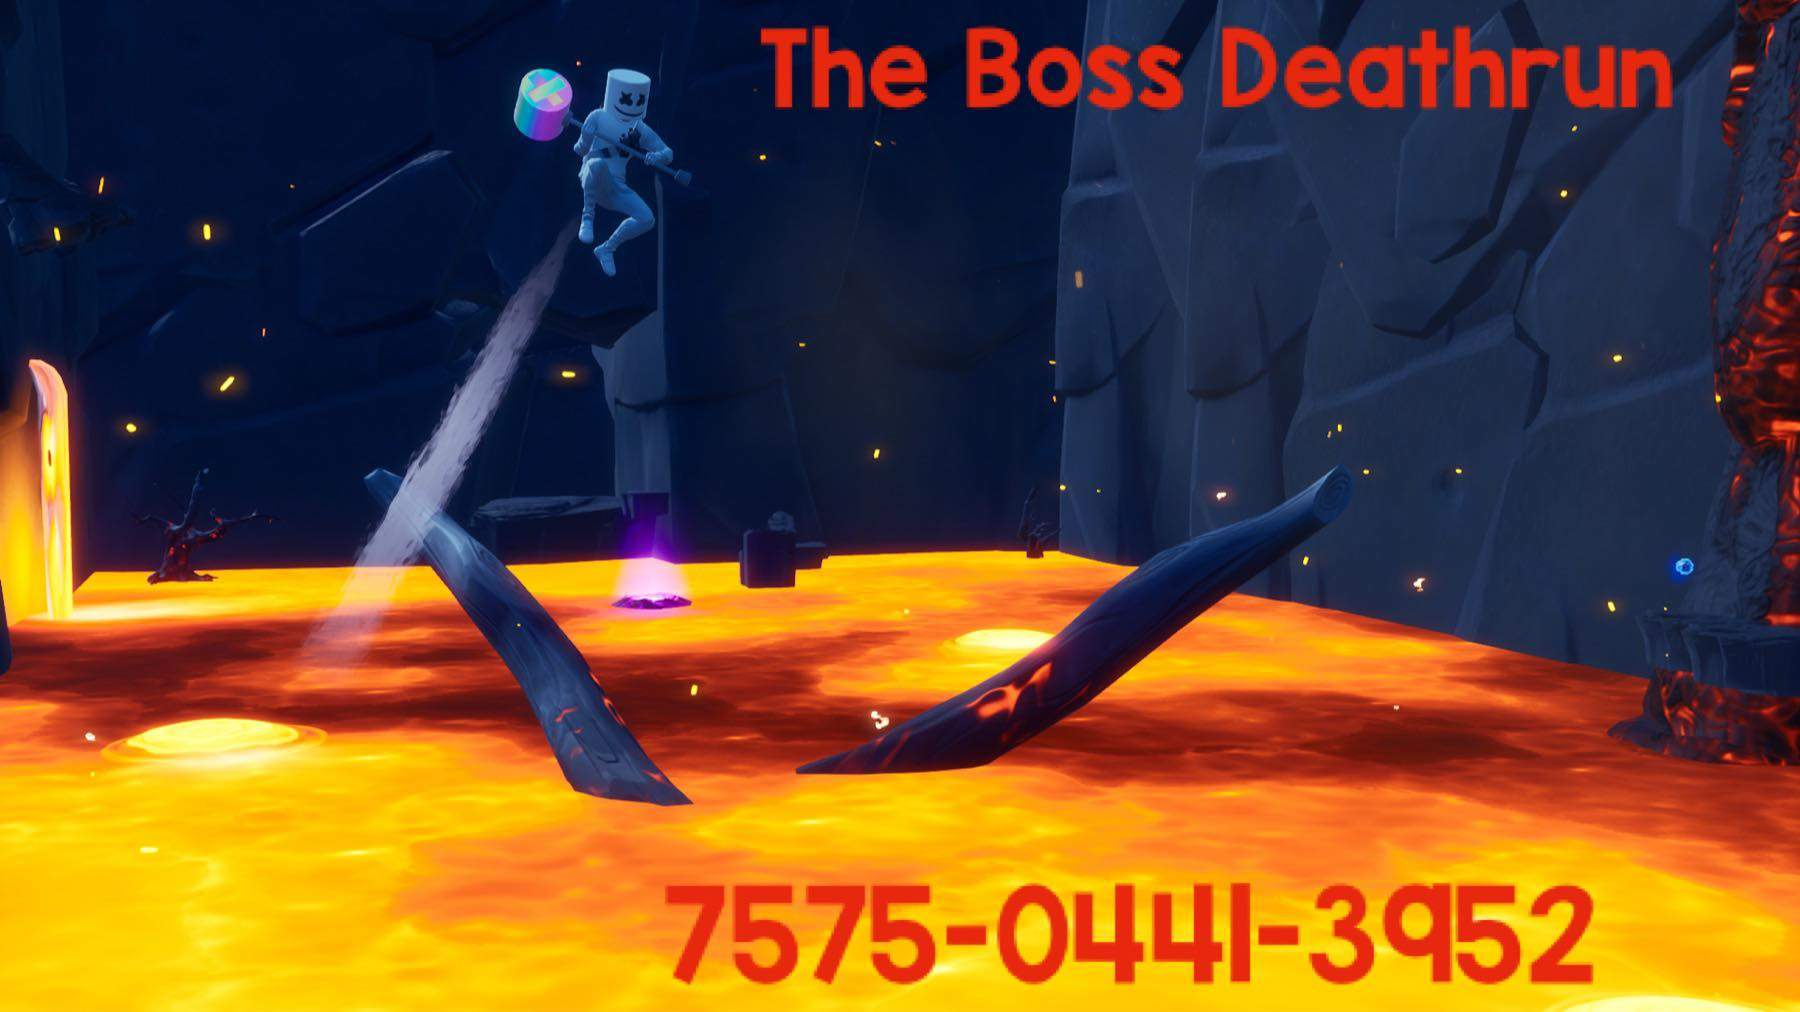 THE BOSS DEATHRUN!